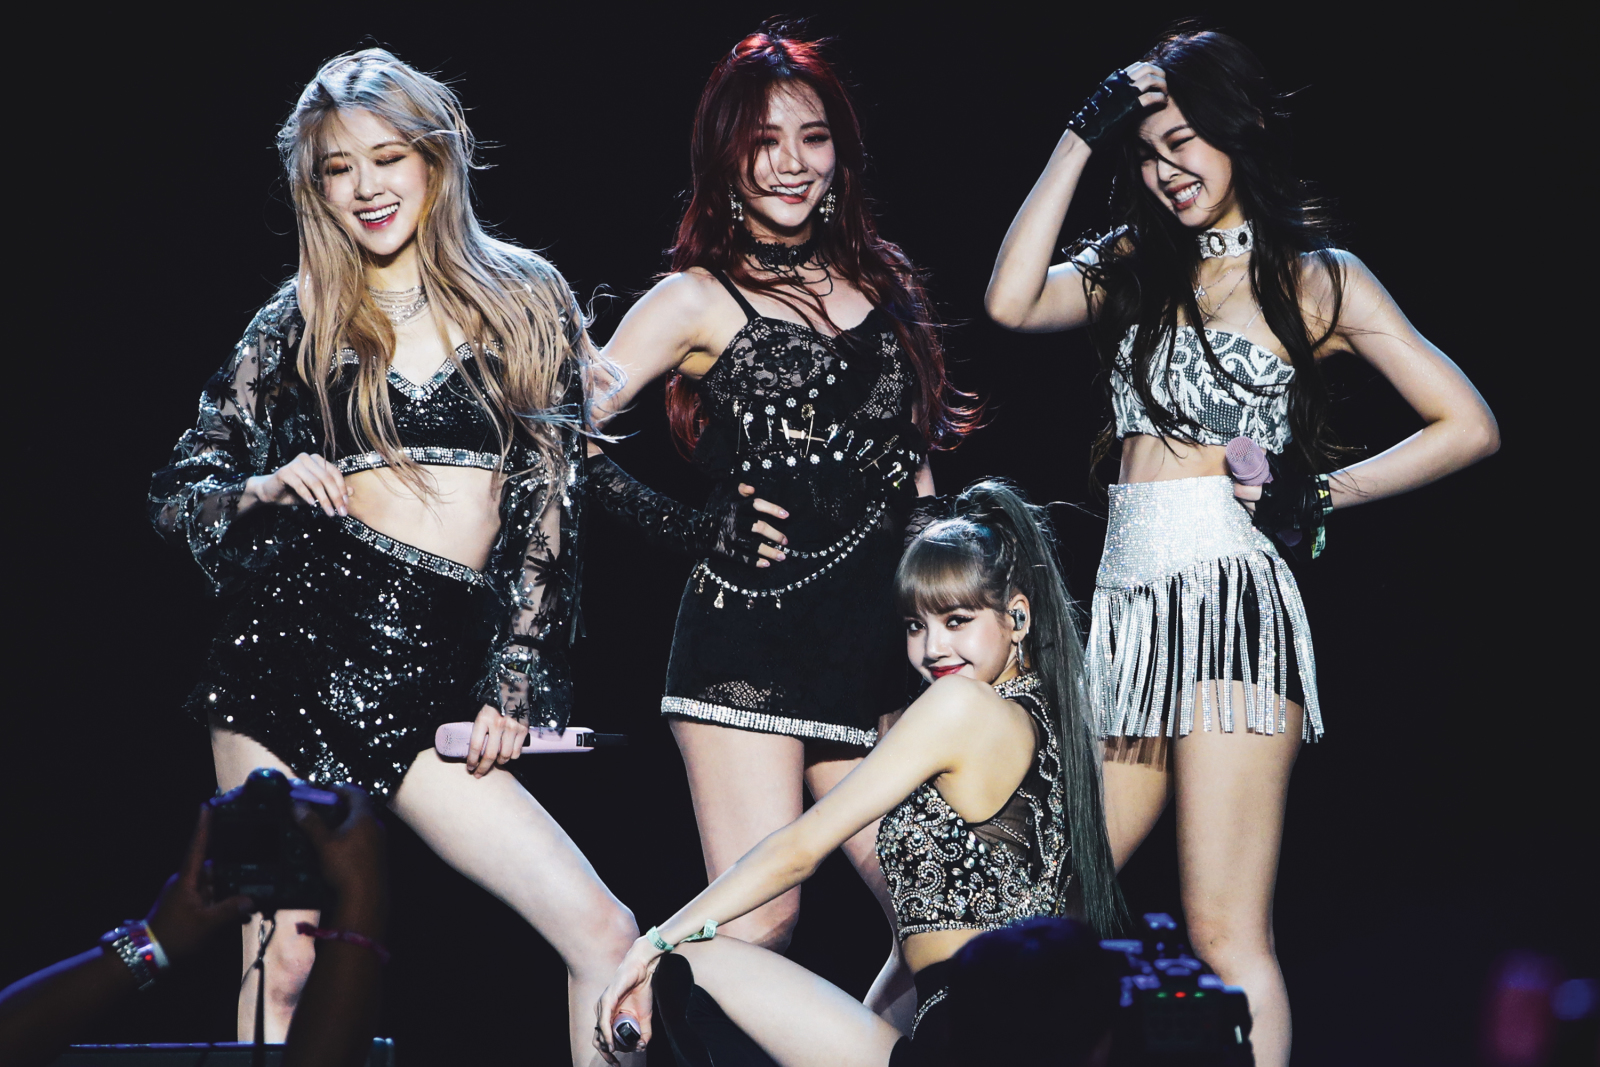 Awesome Jimmy Fallon Blackpink wallpapers to download for free greenvirals